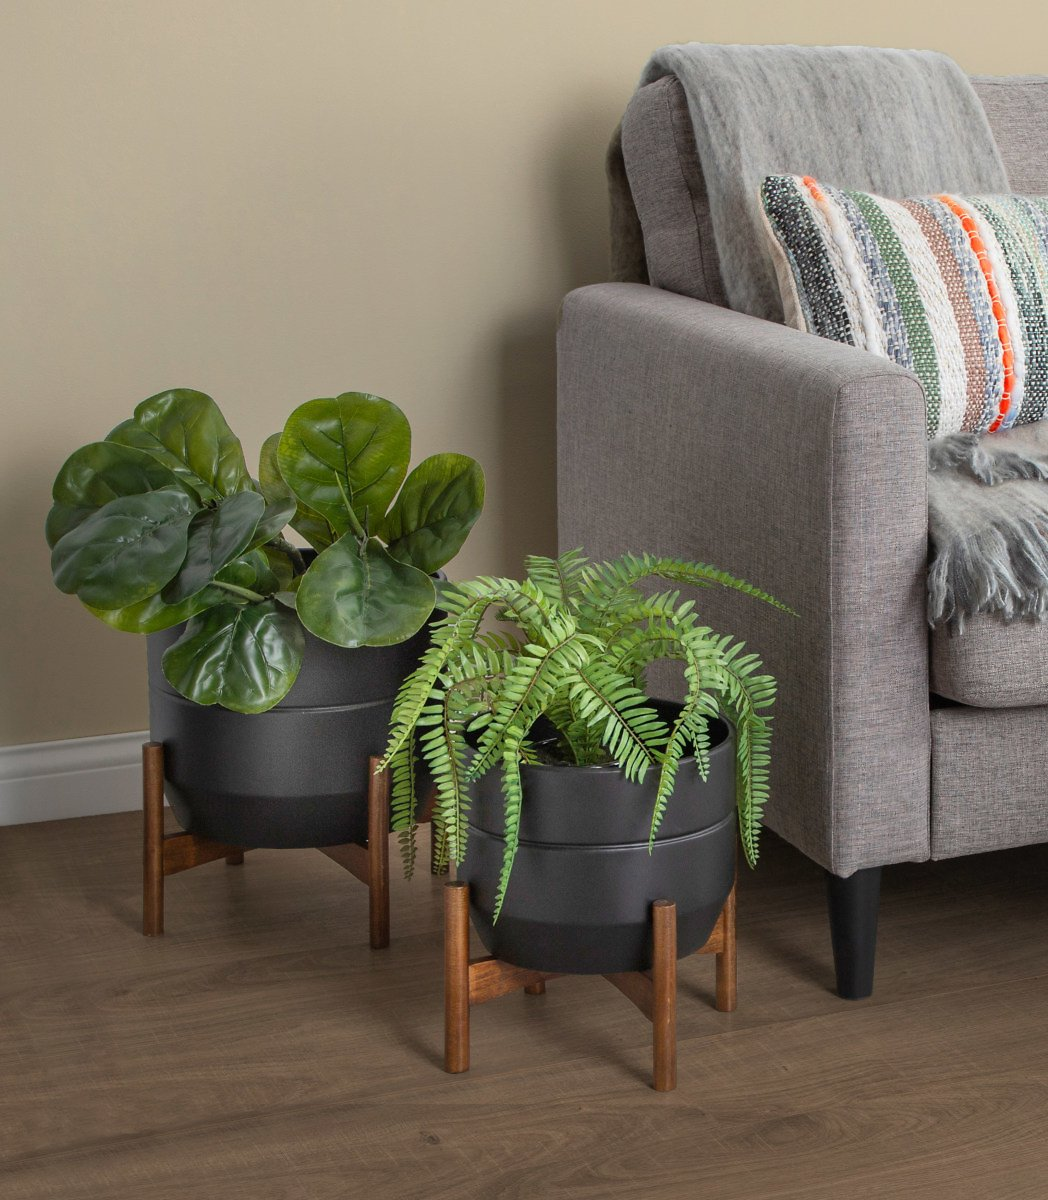 Kate and Laurel Dolbry Mid-Century Modern Metal Planters, Set of 2, Black with Walnut Brown Base, Modern Freestanding Pots